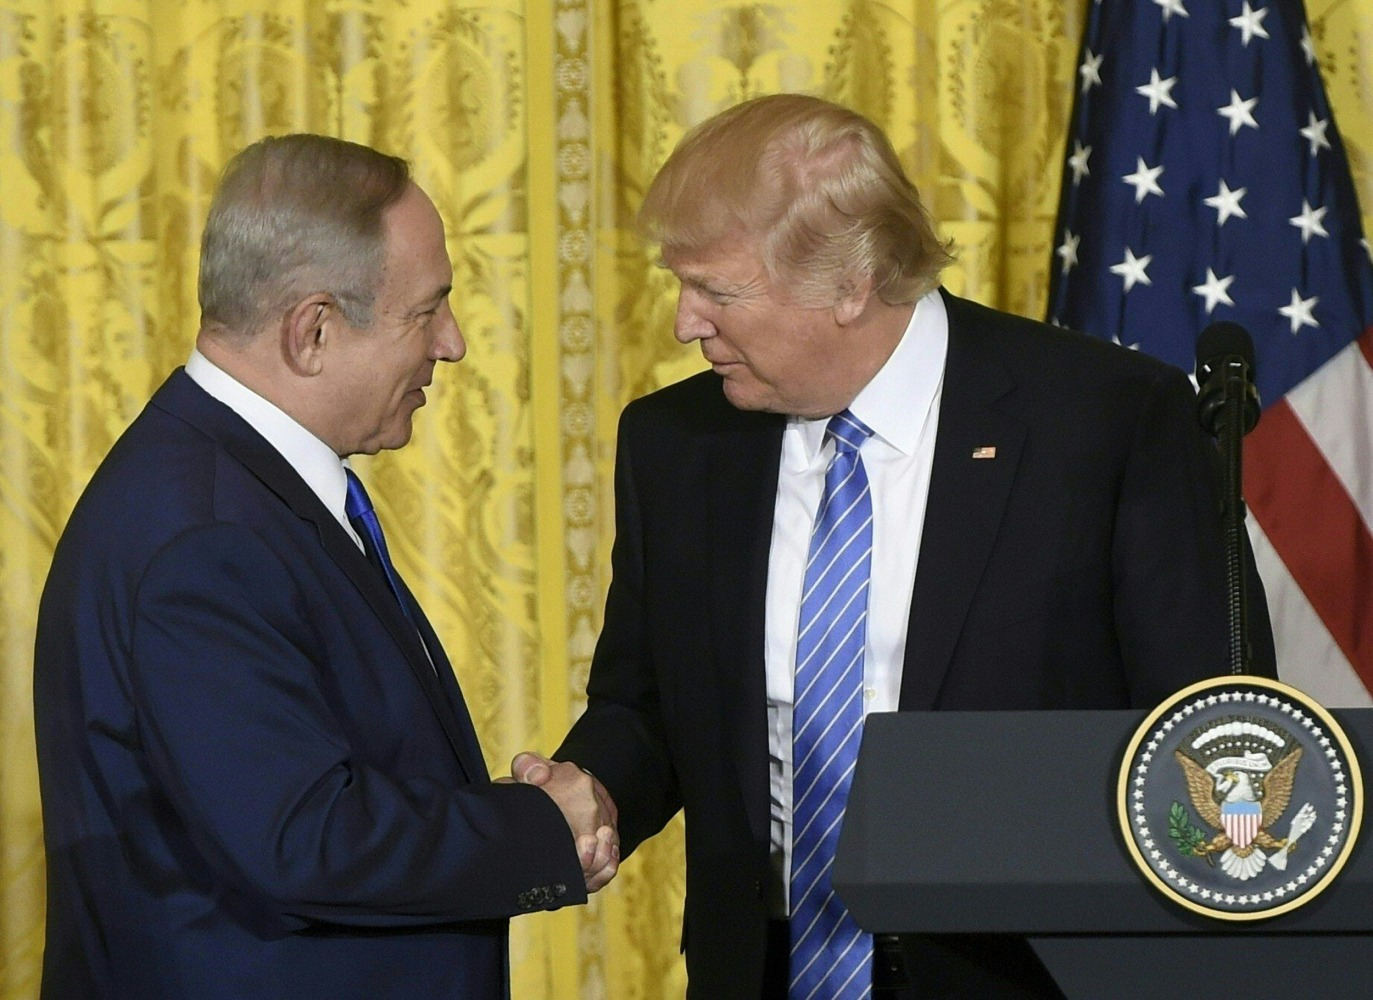 Trump will convey opposition to 'settlements' during Israel trip